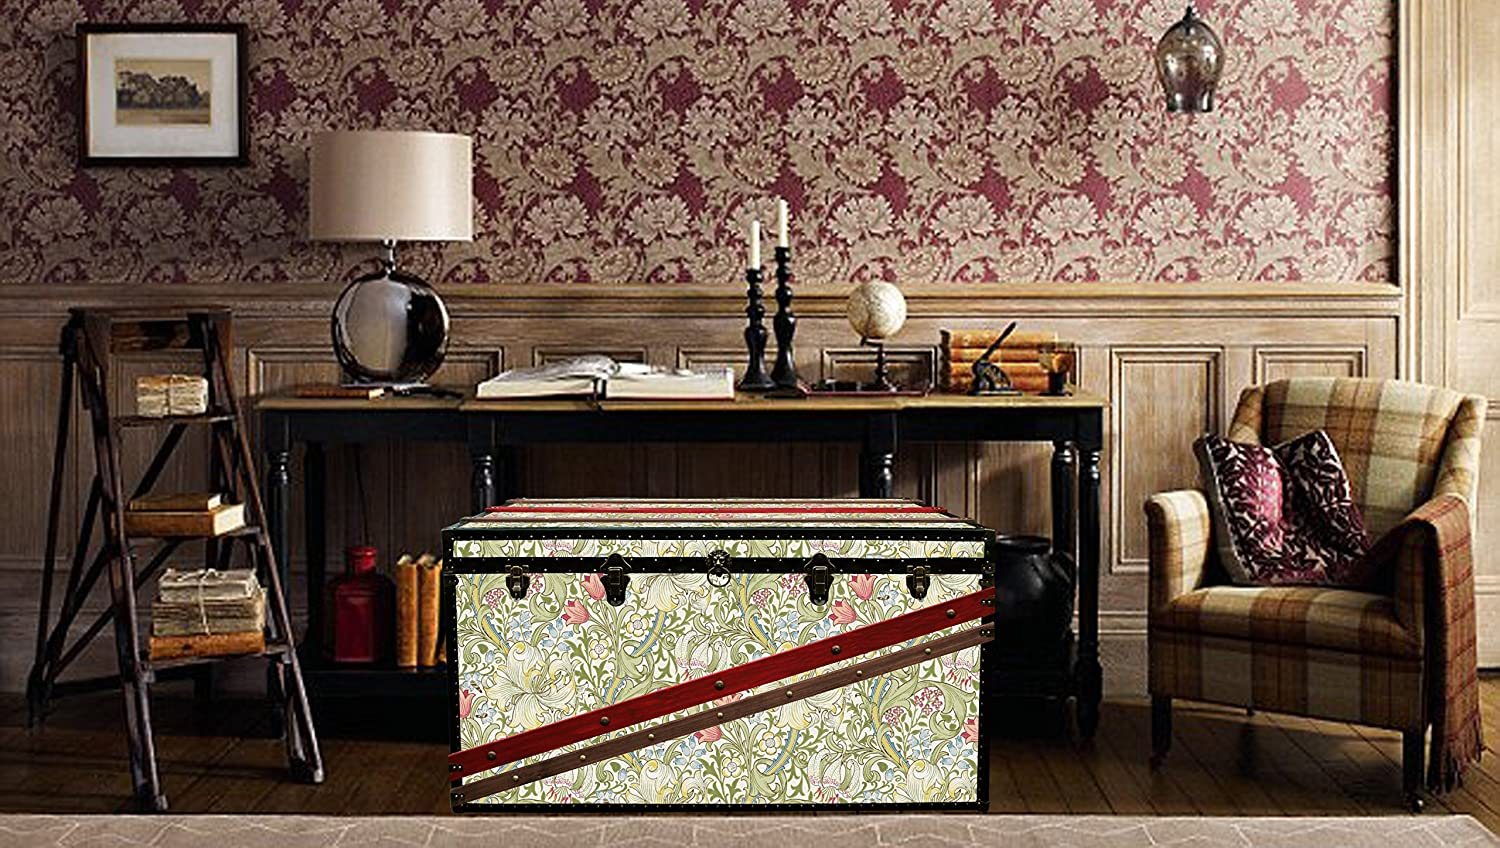 Luxury morris wallpaper coffee table steamer trunk exclusive furniture toy hope chest storage bench exclusive home decor morris glgr amazon co uk